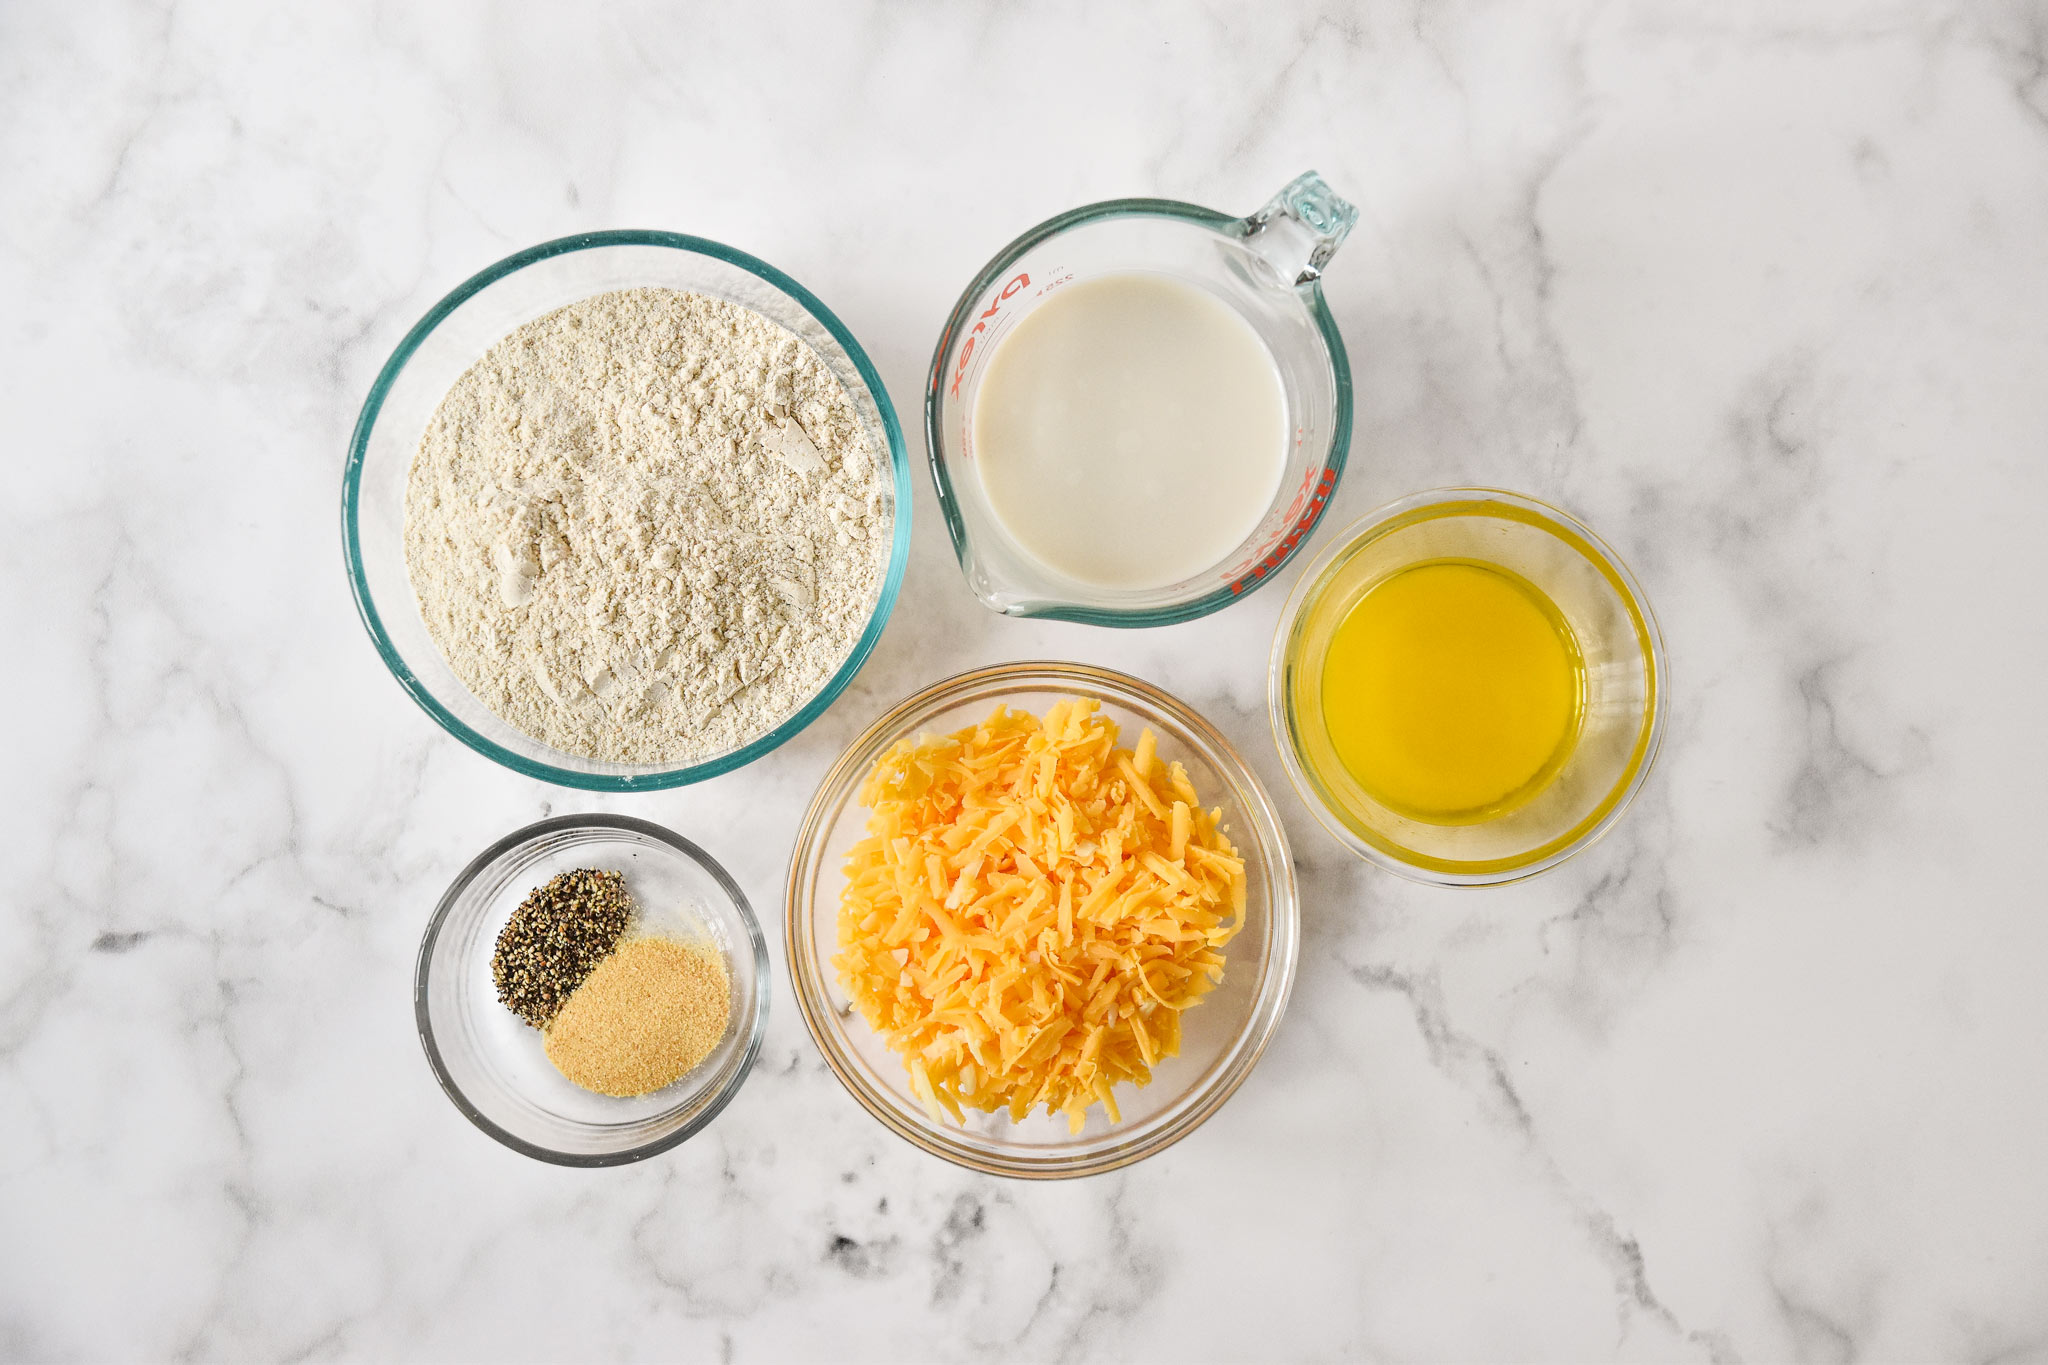 ingredients in separate bowls for the pancake mix cheddar drop biscuits.